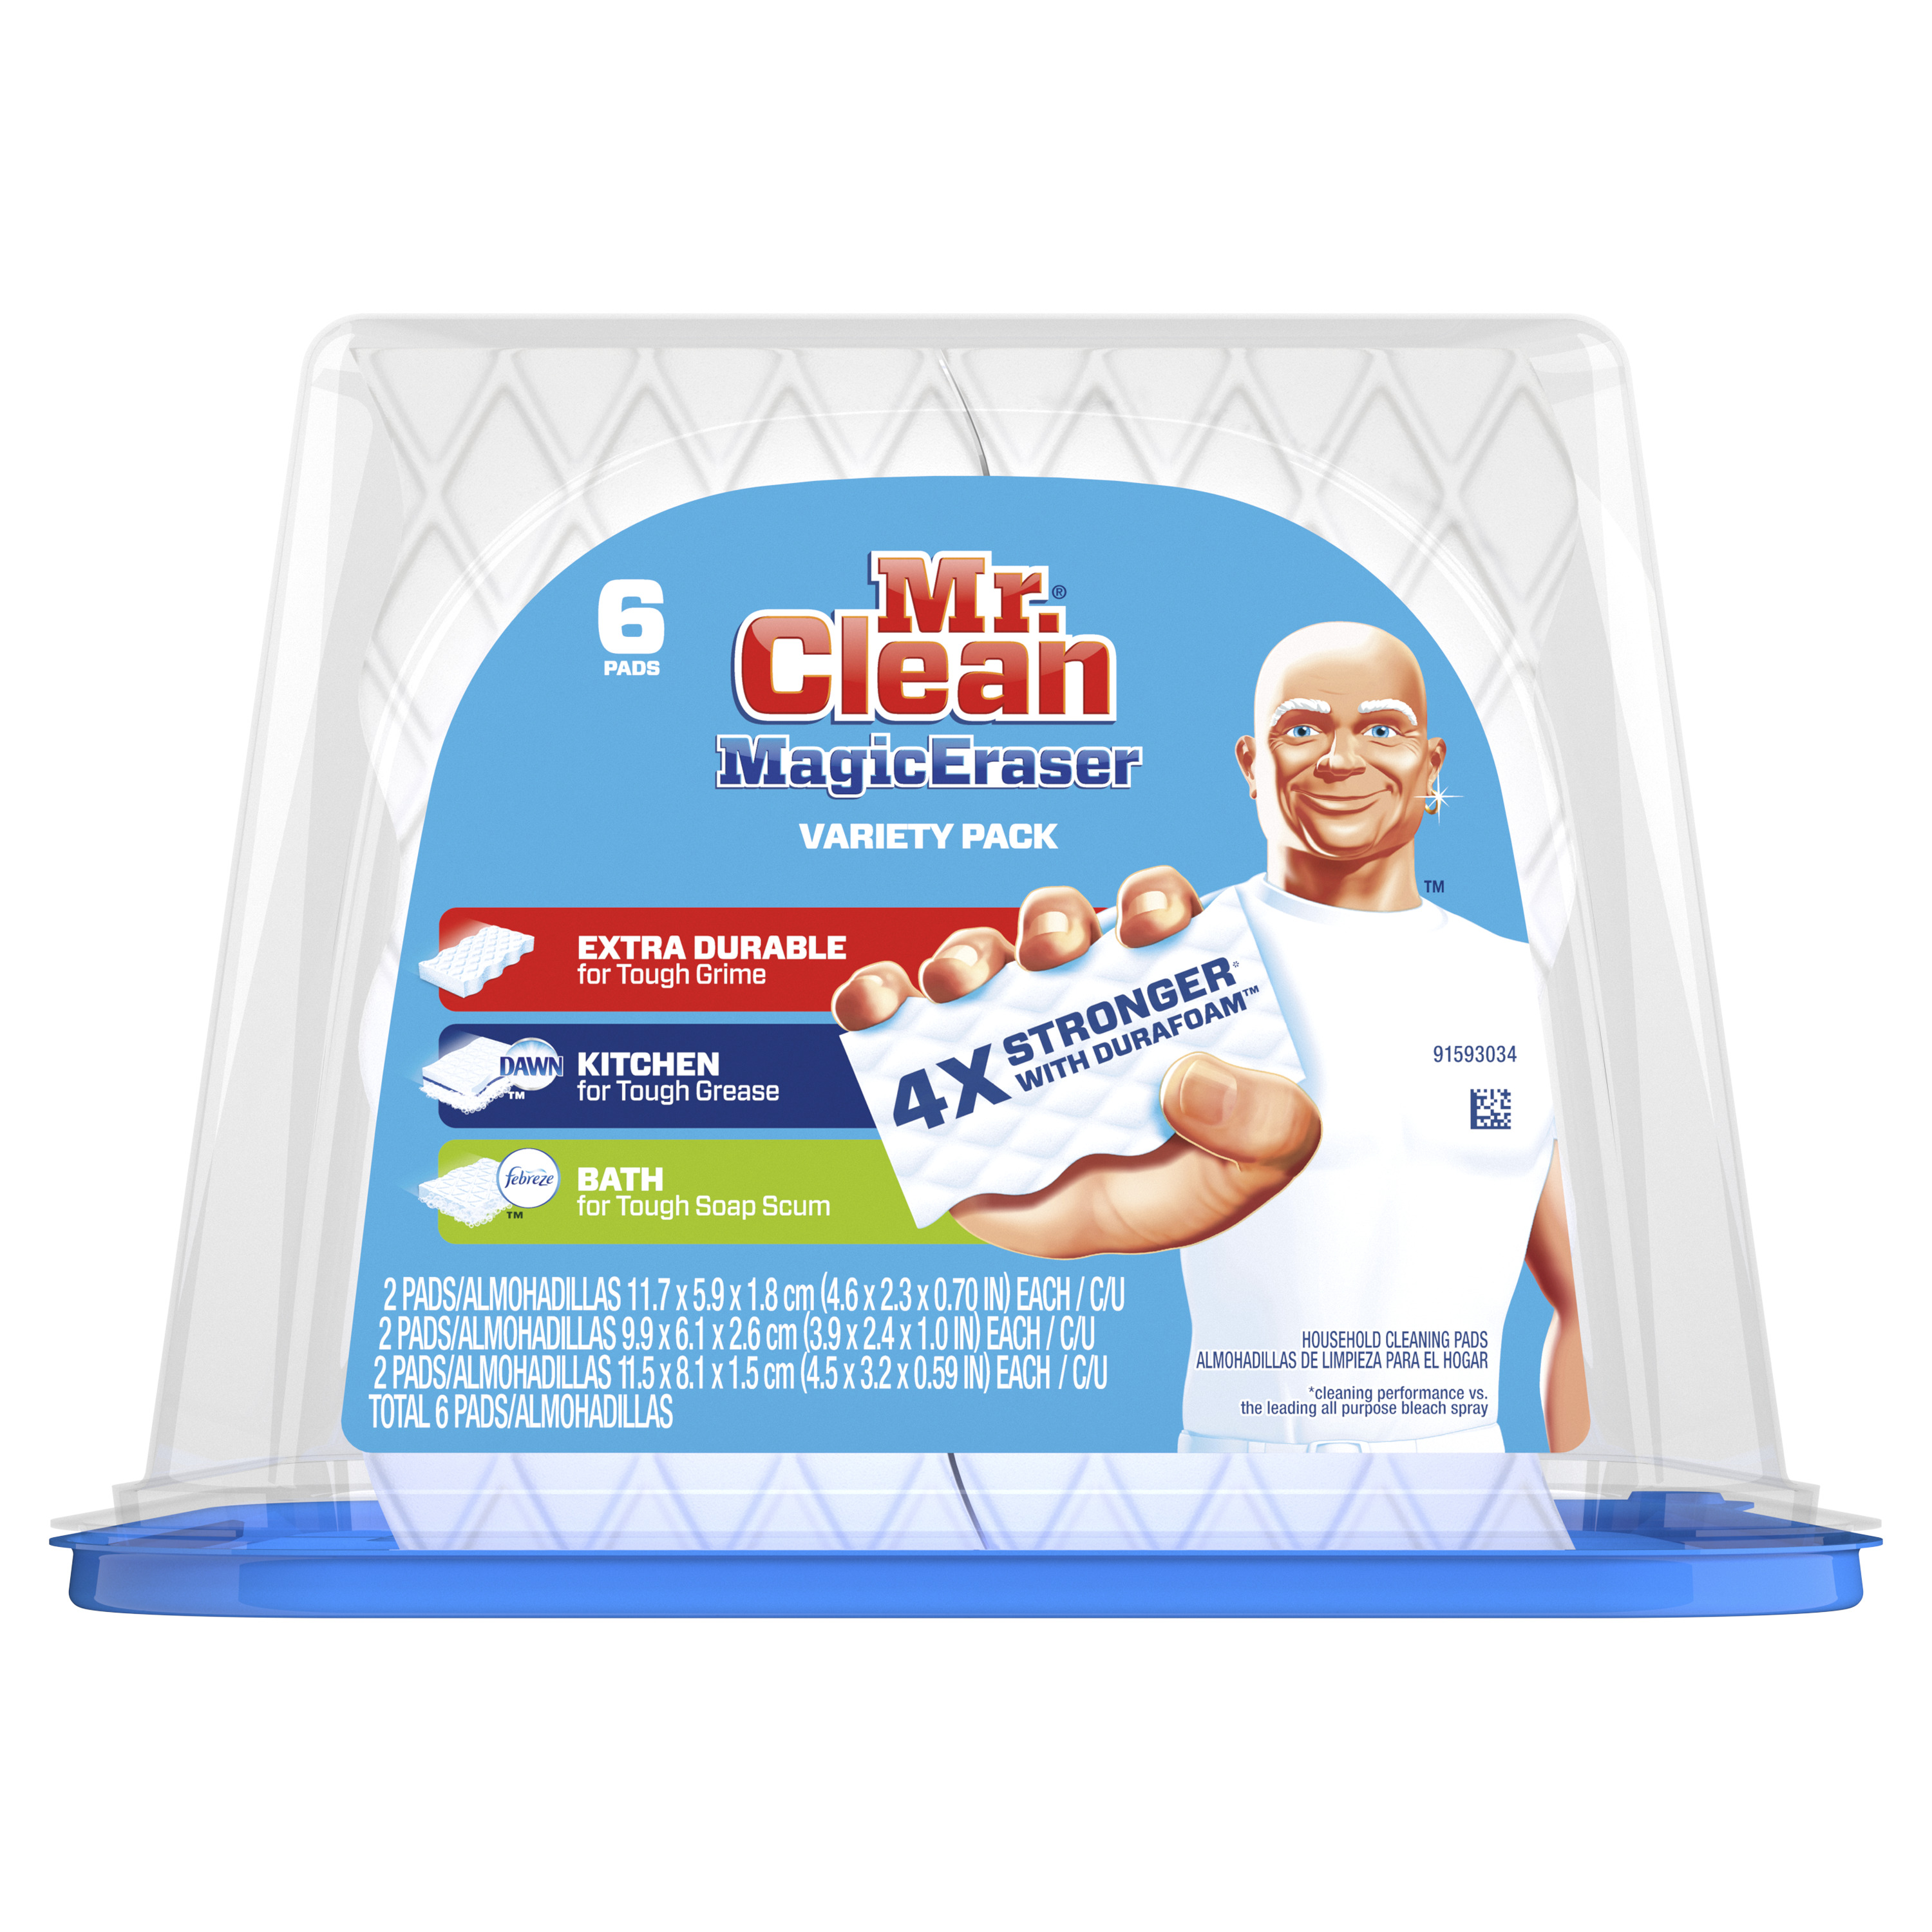 Mr. Clean Magic Eraser Variety Pack, Cleaning Pads with Durafoam, 6 count